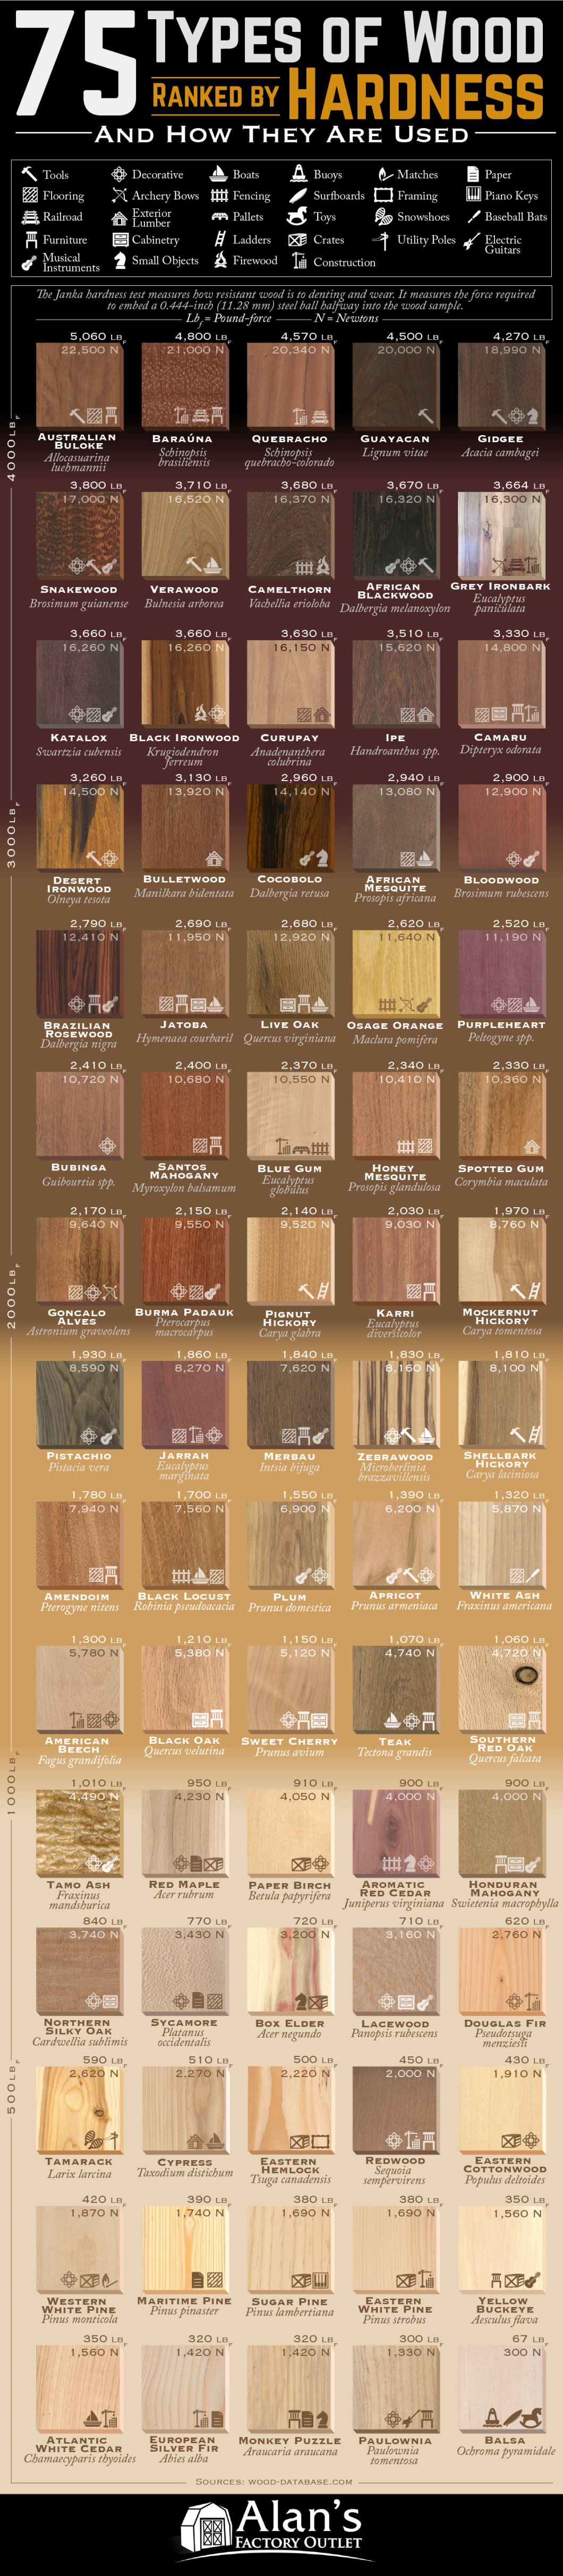 Ranking of 75 Types of Wood According to the Janka Hardness Test - Infographic